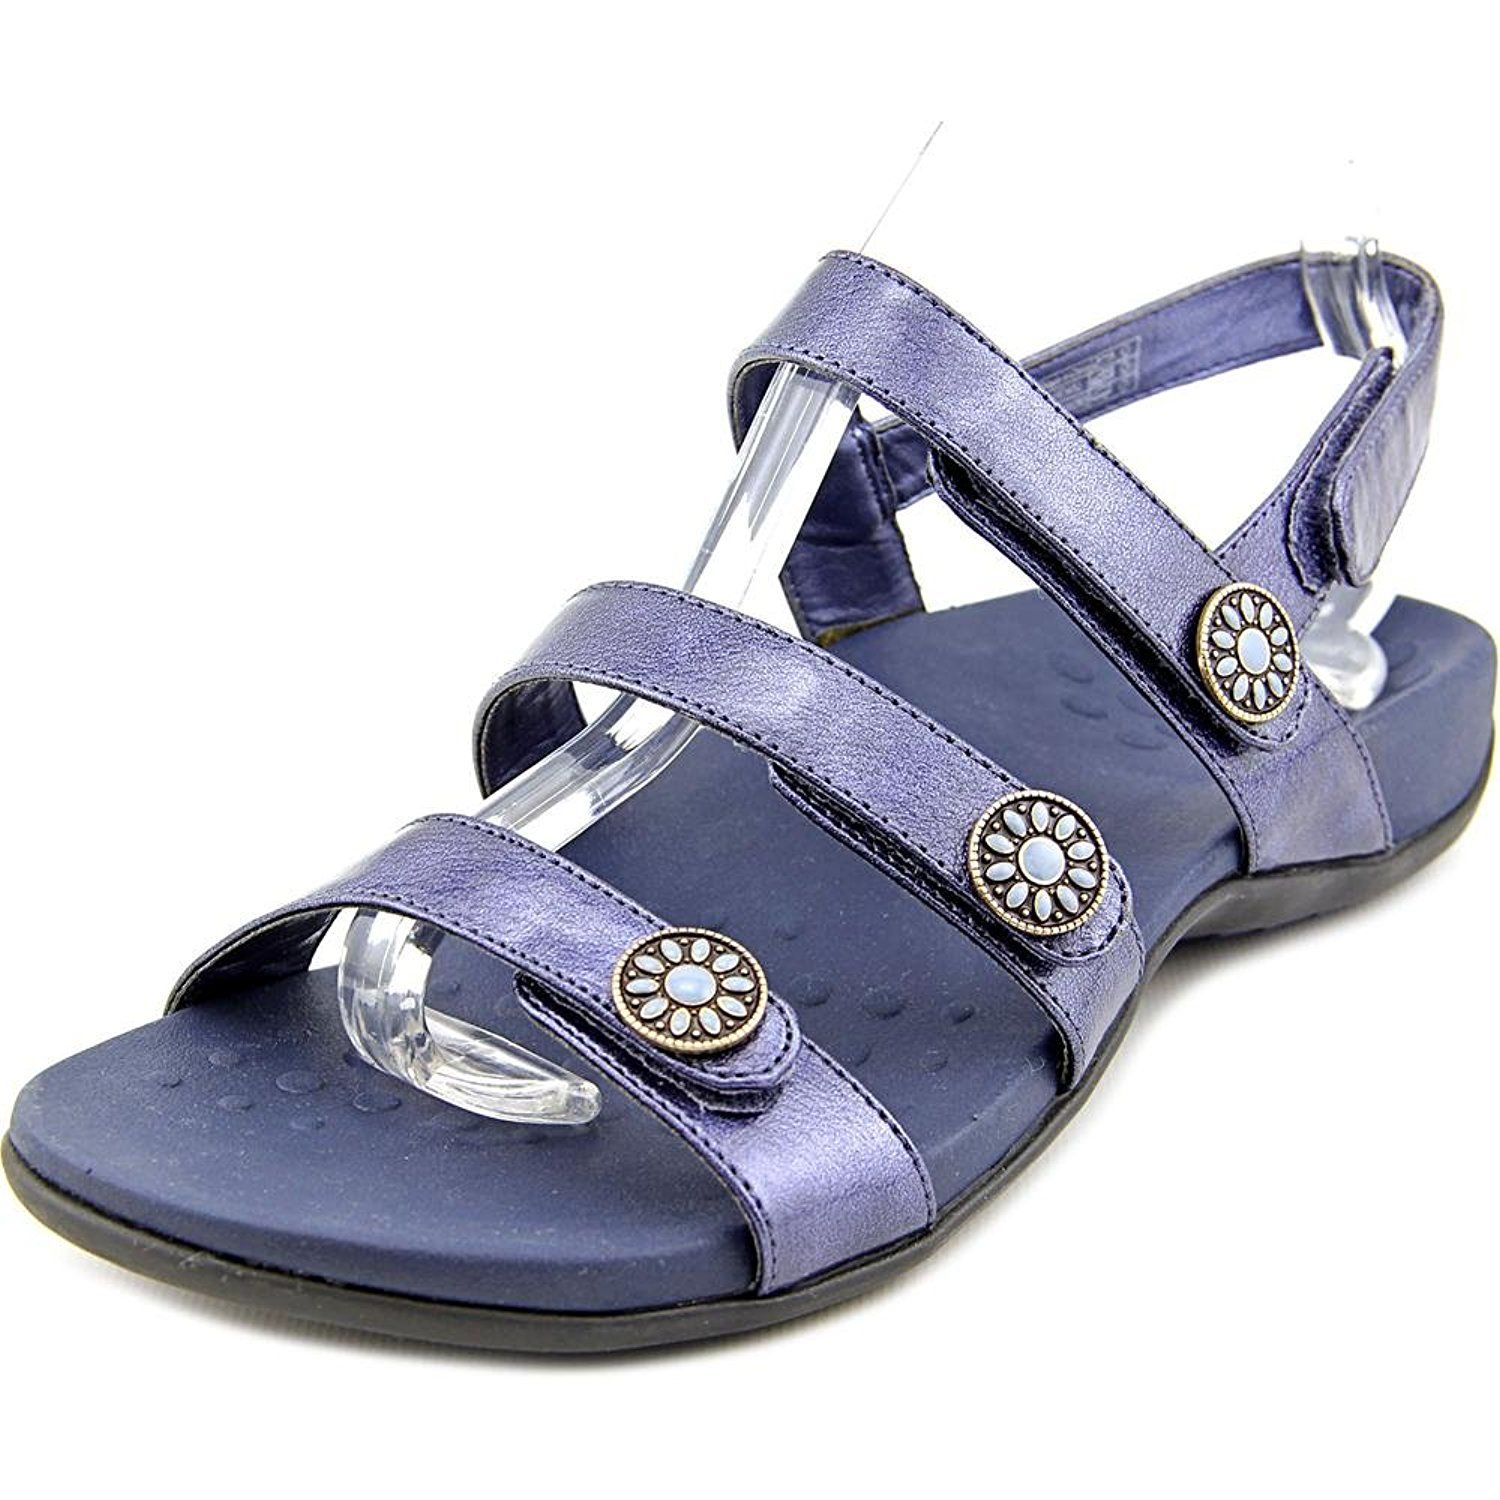 Vionic By Orthaheel Cathy Sandals, Denim ** You can find